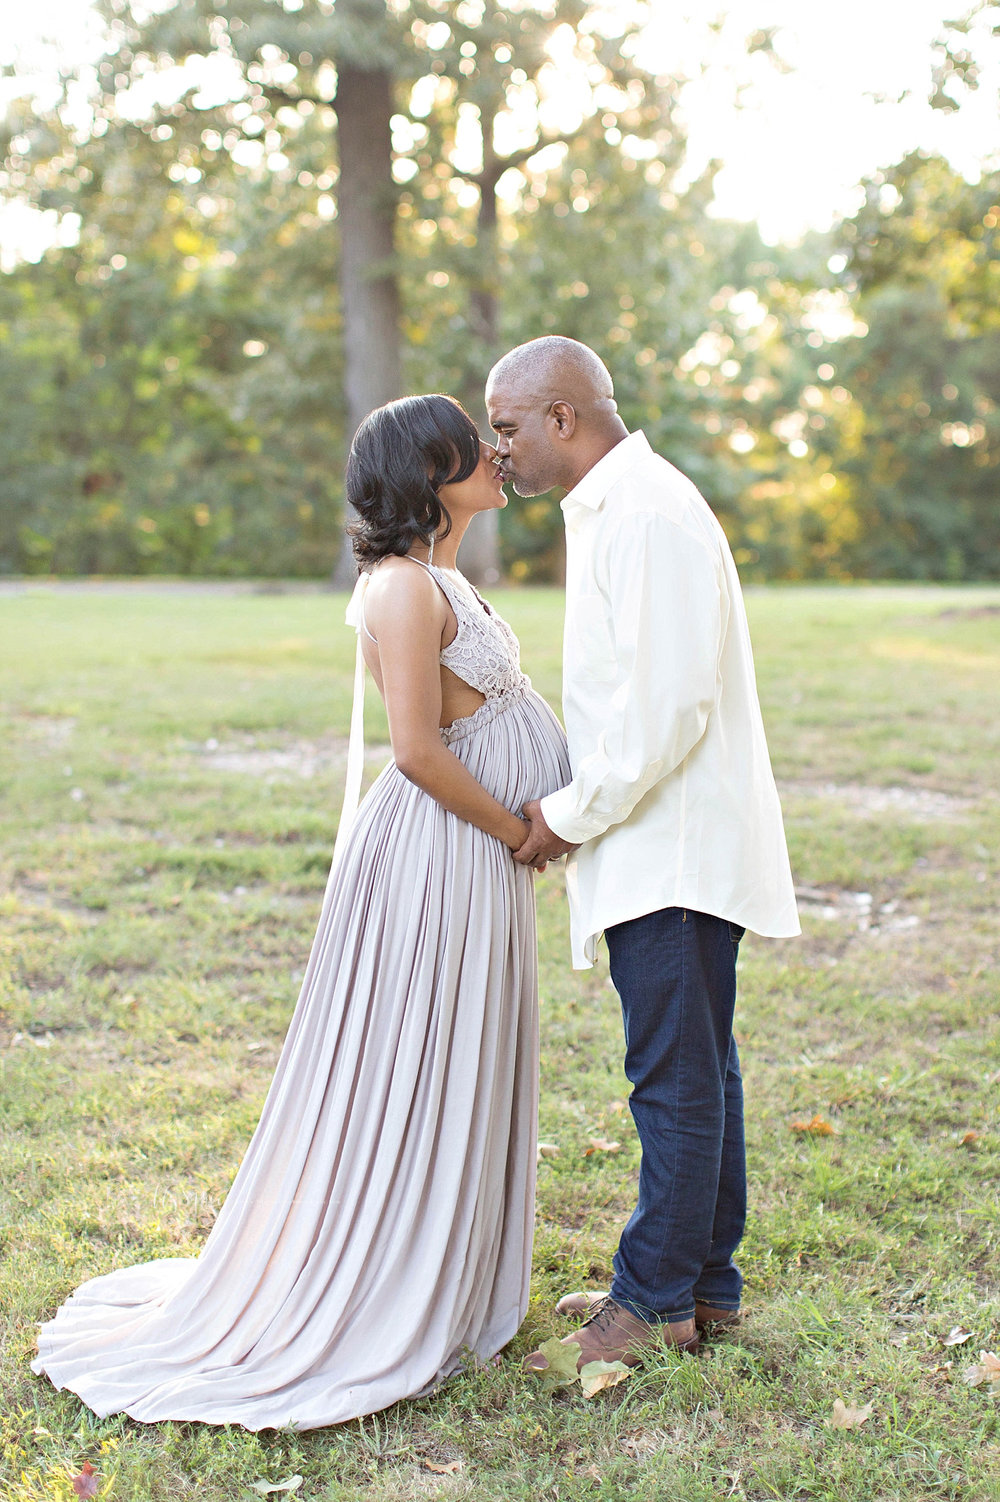 Image of a pregnant, African American woman, and her husband, facing each other, holding hands and kissing.